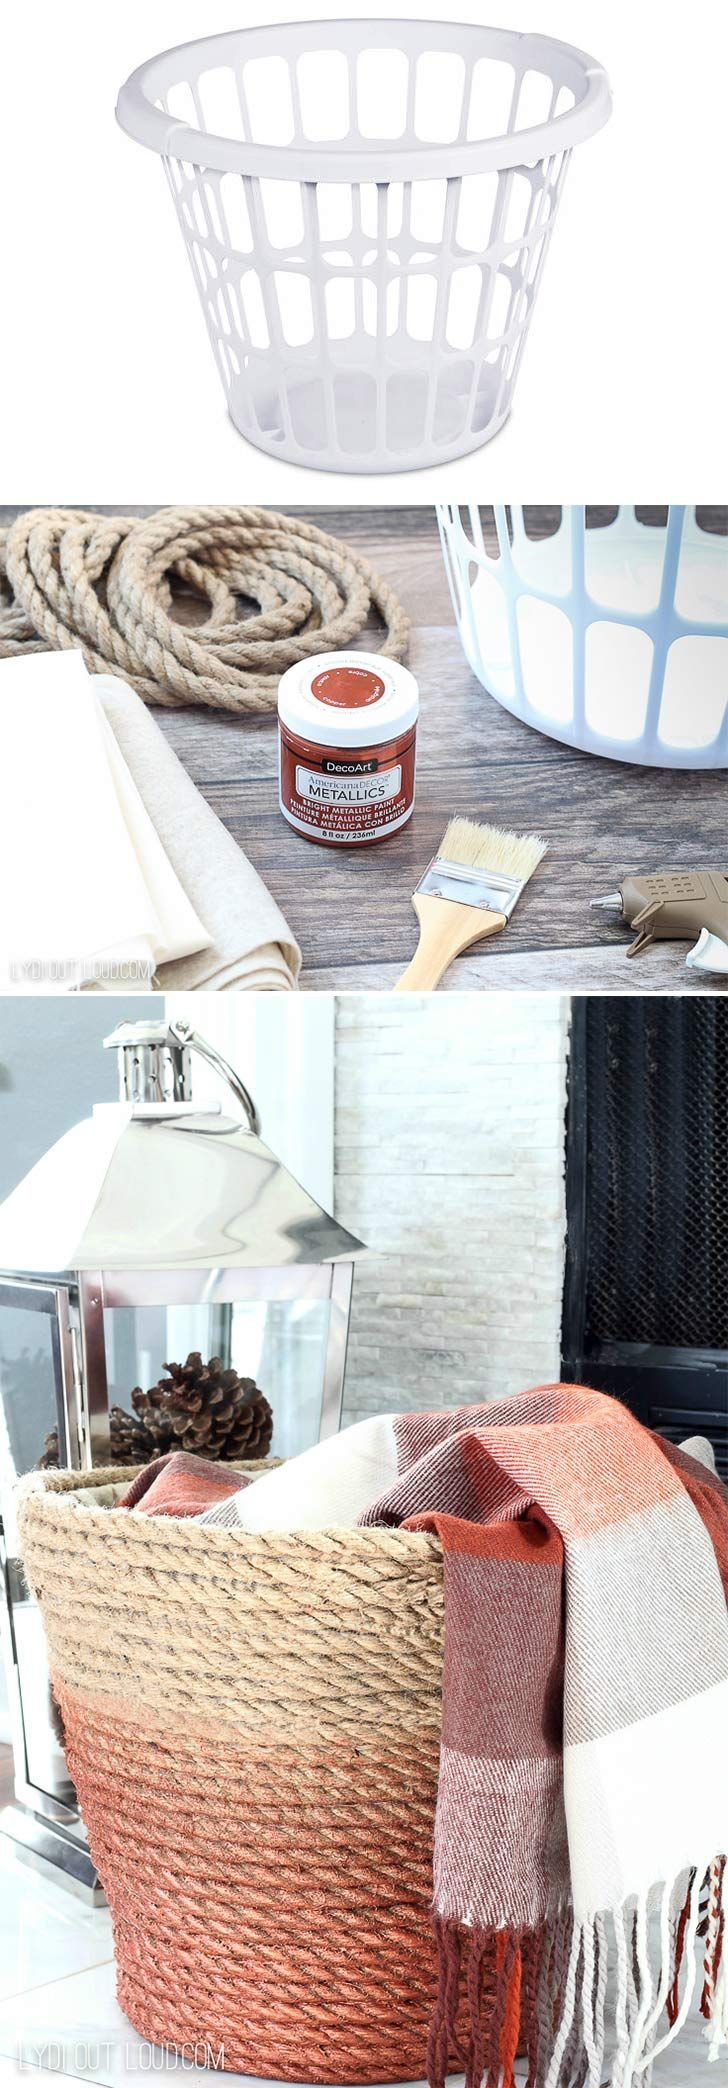 Check out this DIY metallic rope throw basket tutorial. Click on image to see mo...